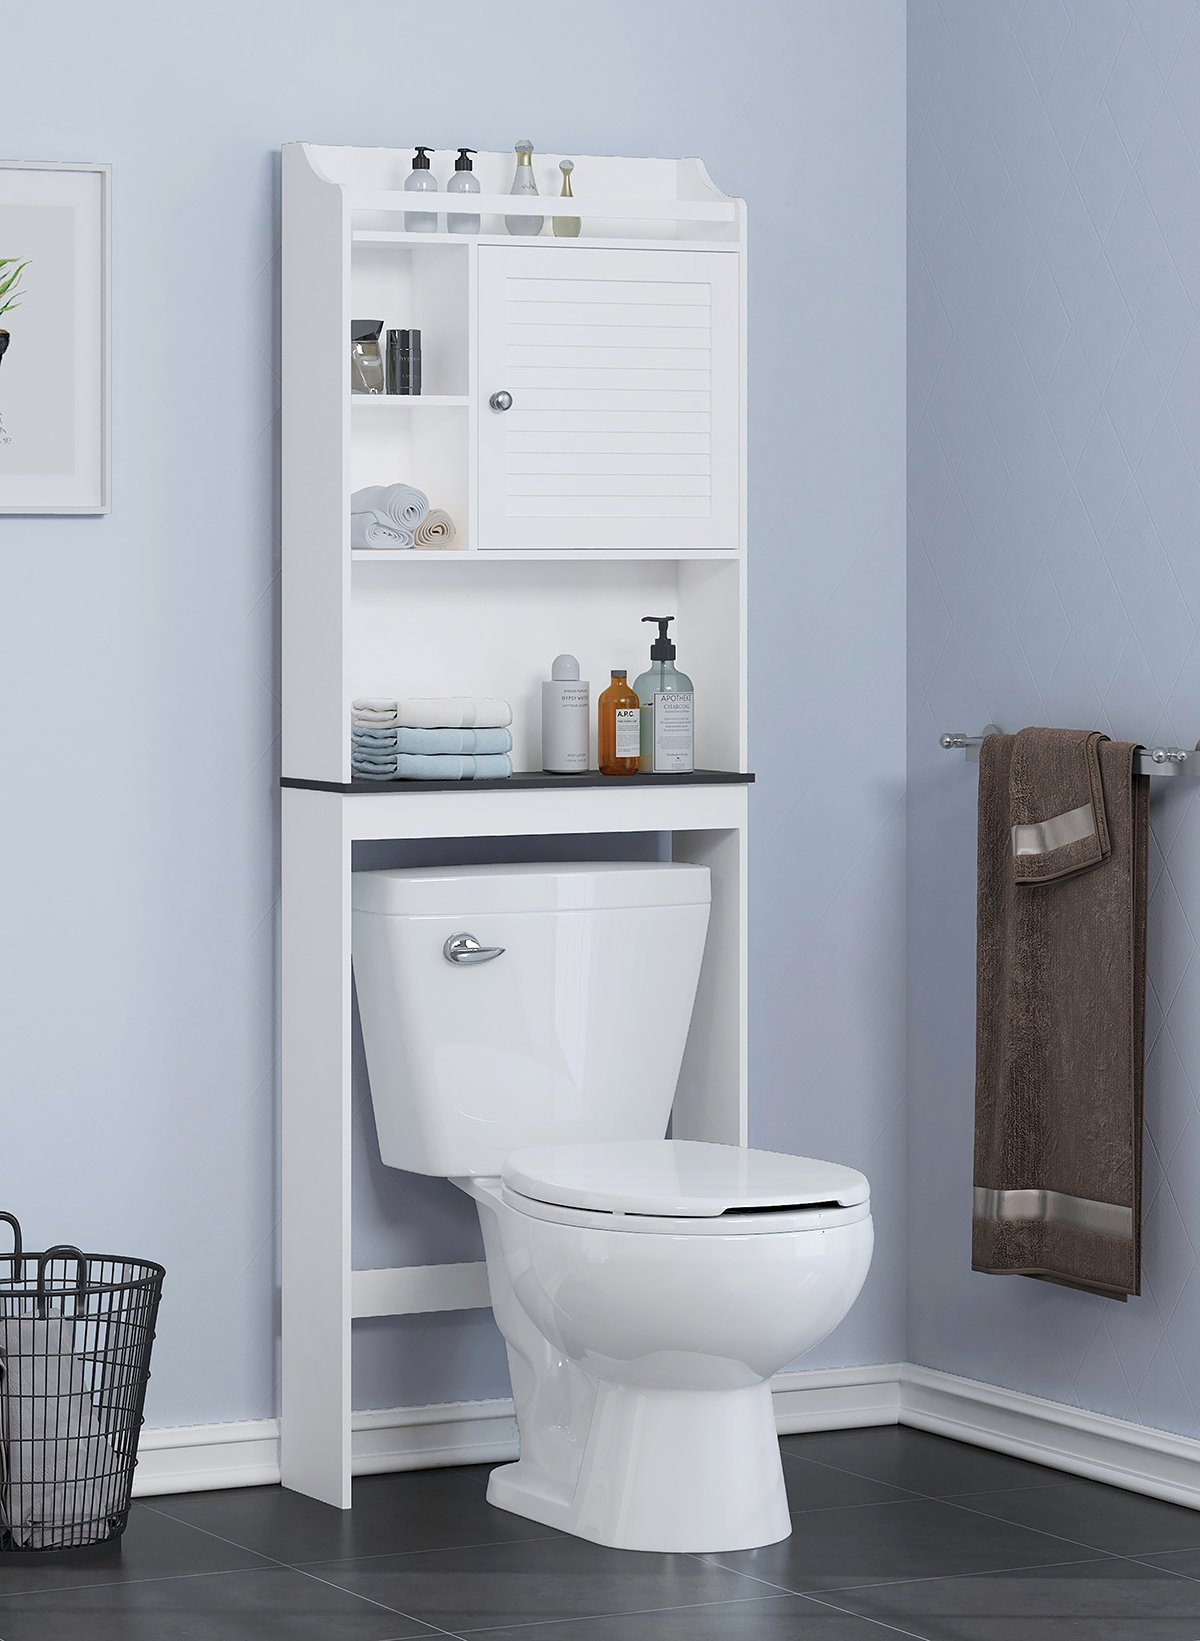 Spirich Home Bathroom Shelf Over The Toilet, Bathroom Cabinet Organizer Over Toilet with Louver Door, White Finish by Spirich